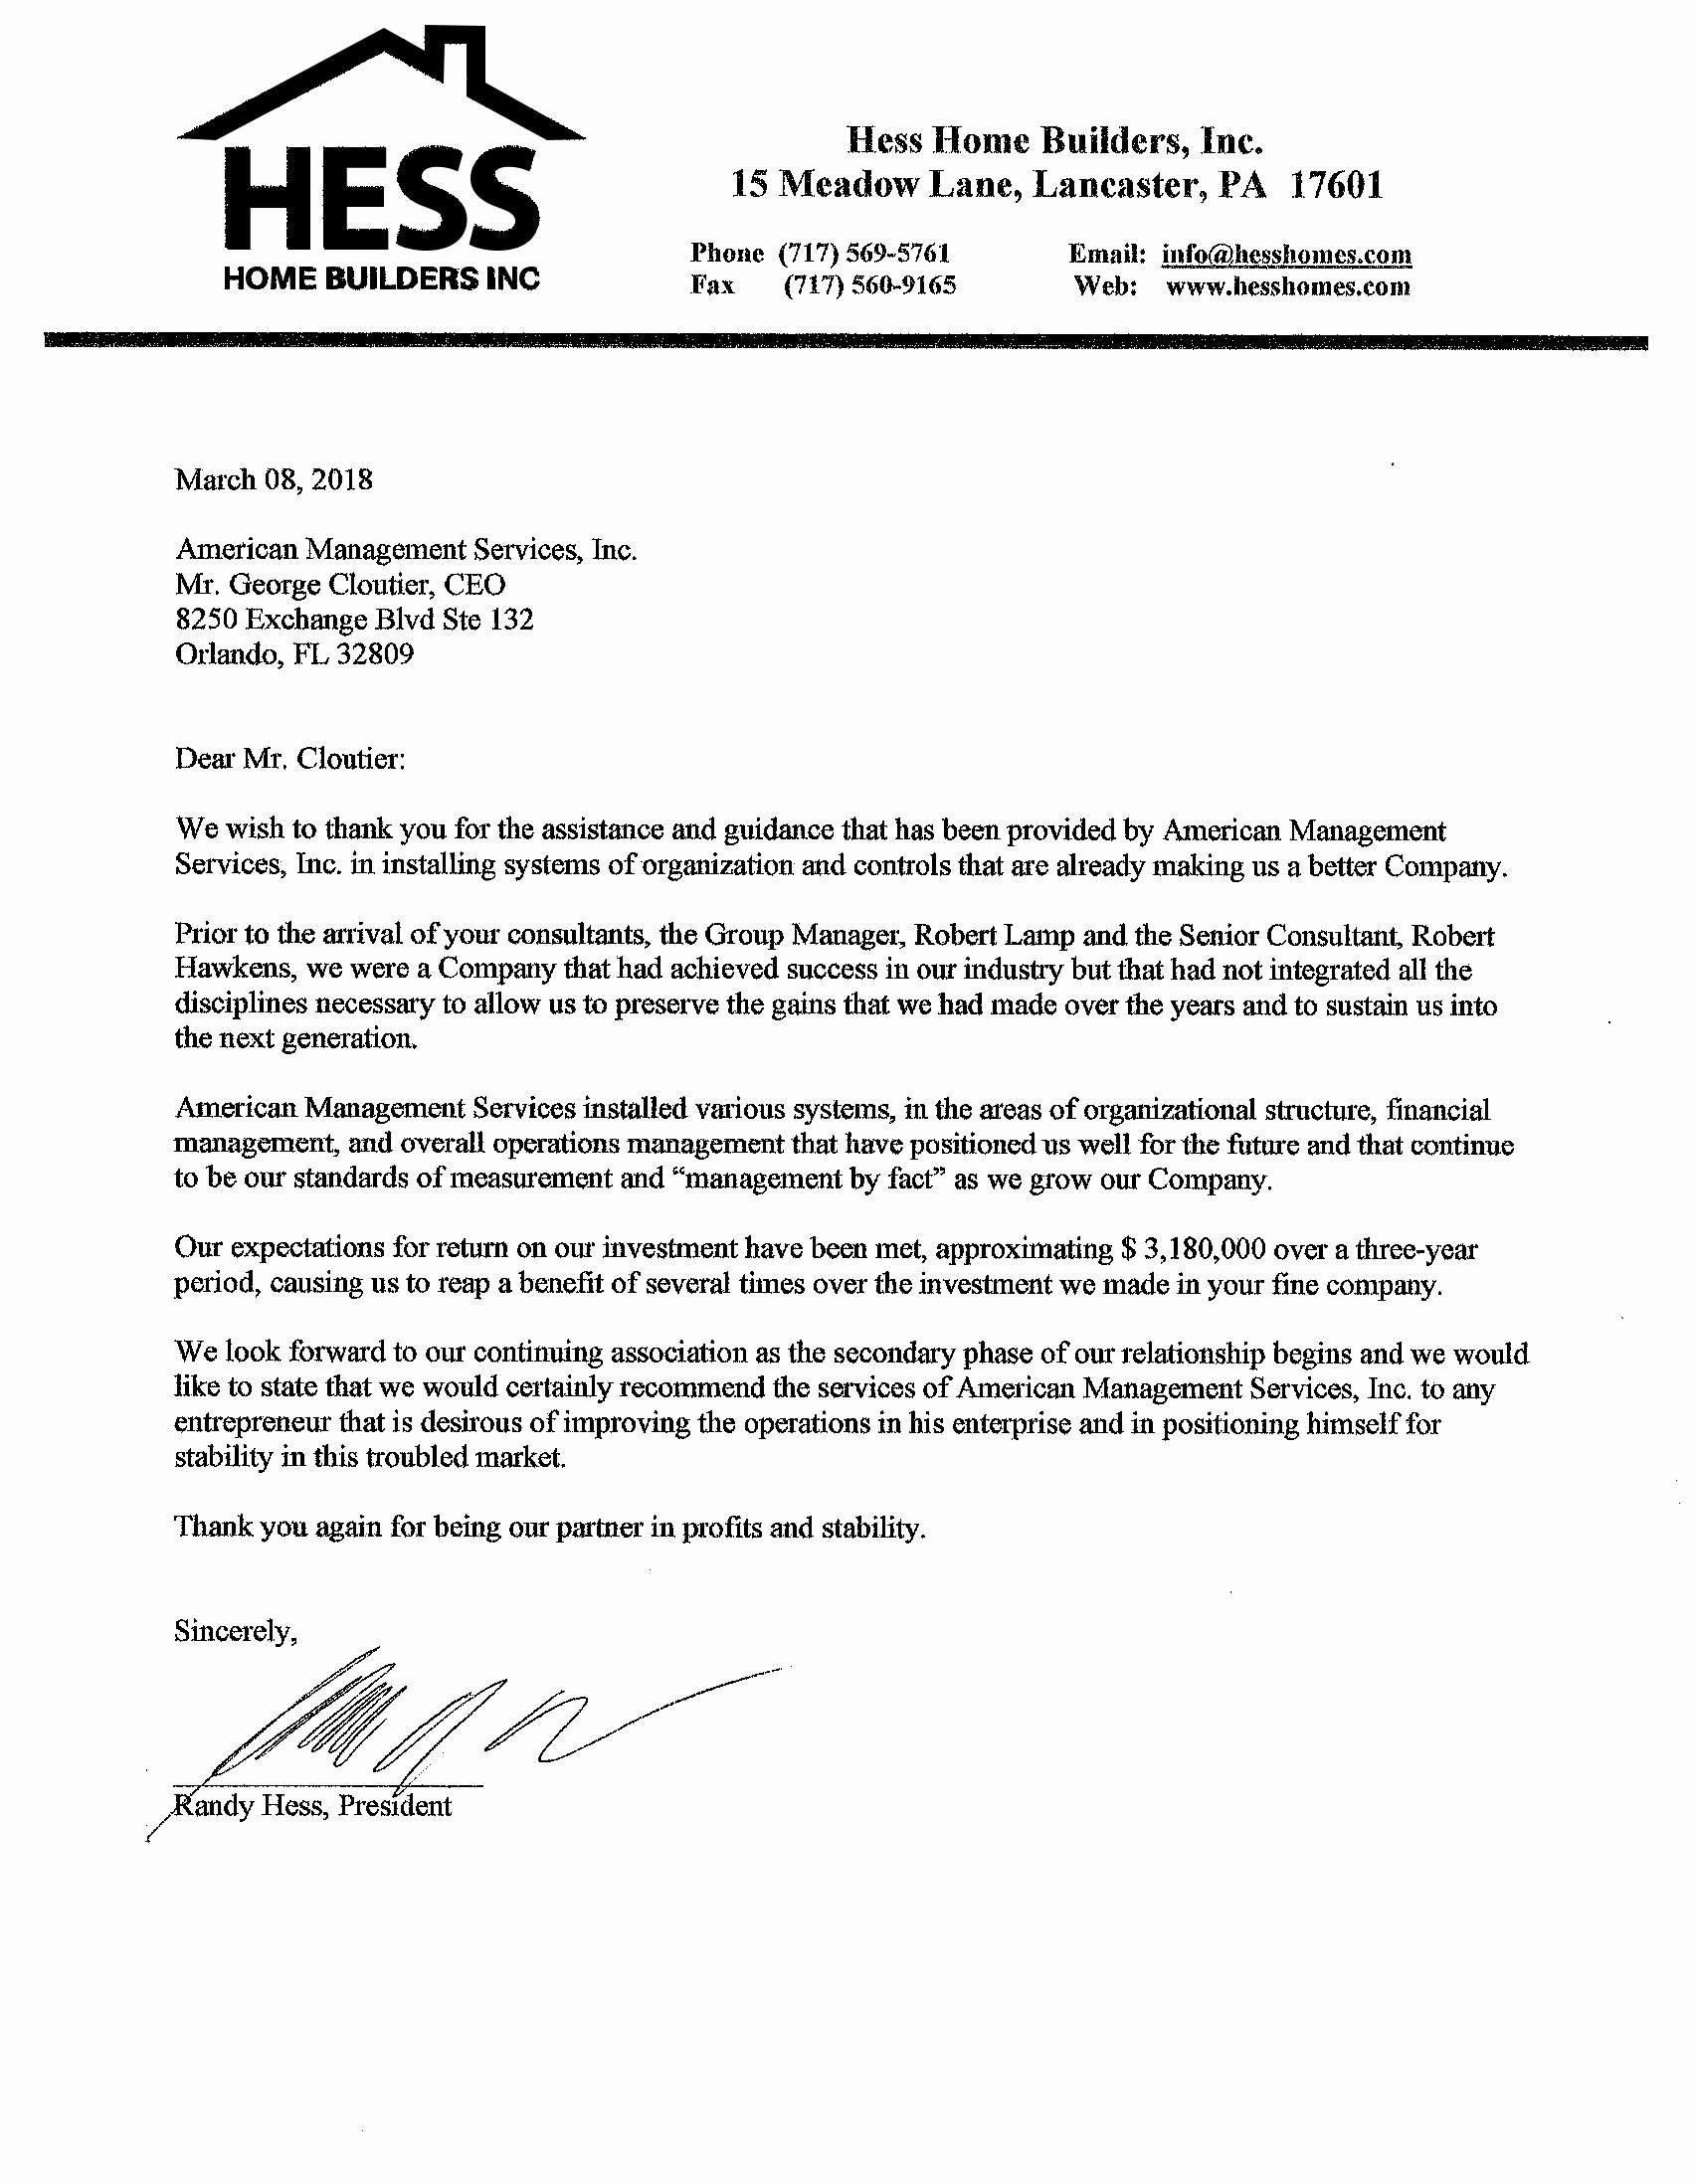 Letter Of Recommendation for Housing Luxury Hess Home Builders Reference Letter Small Business